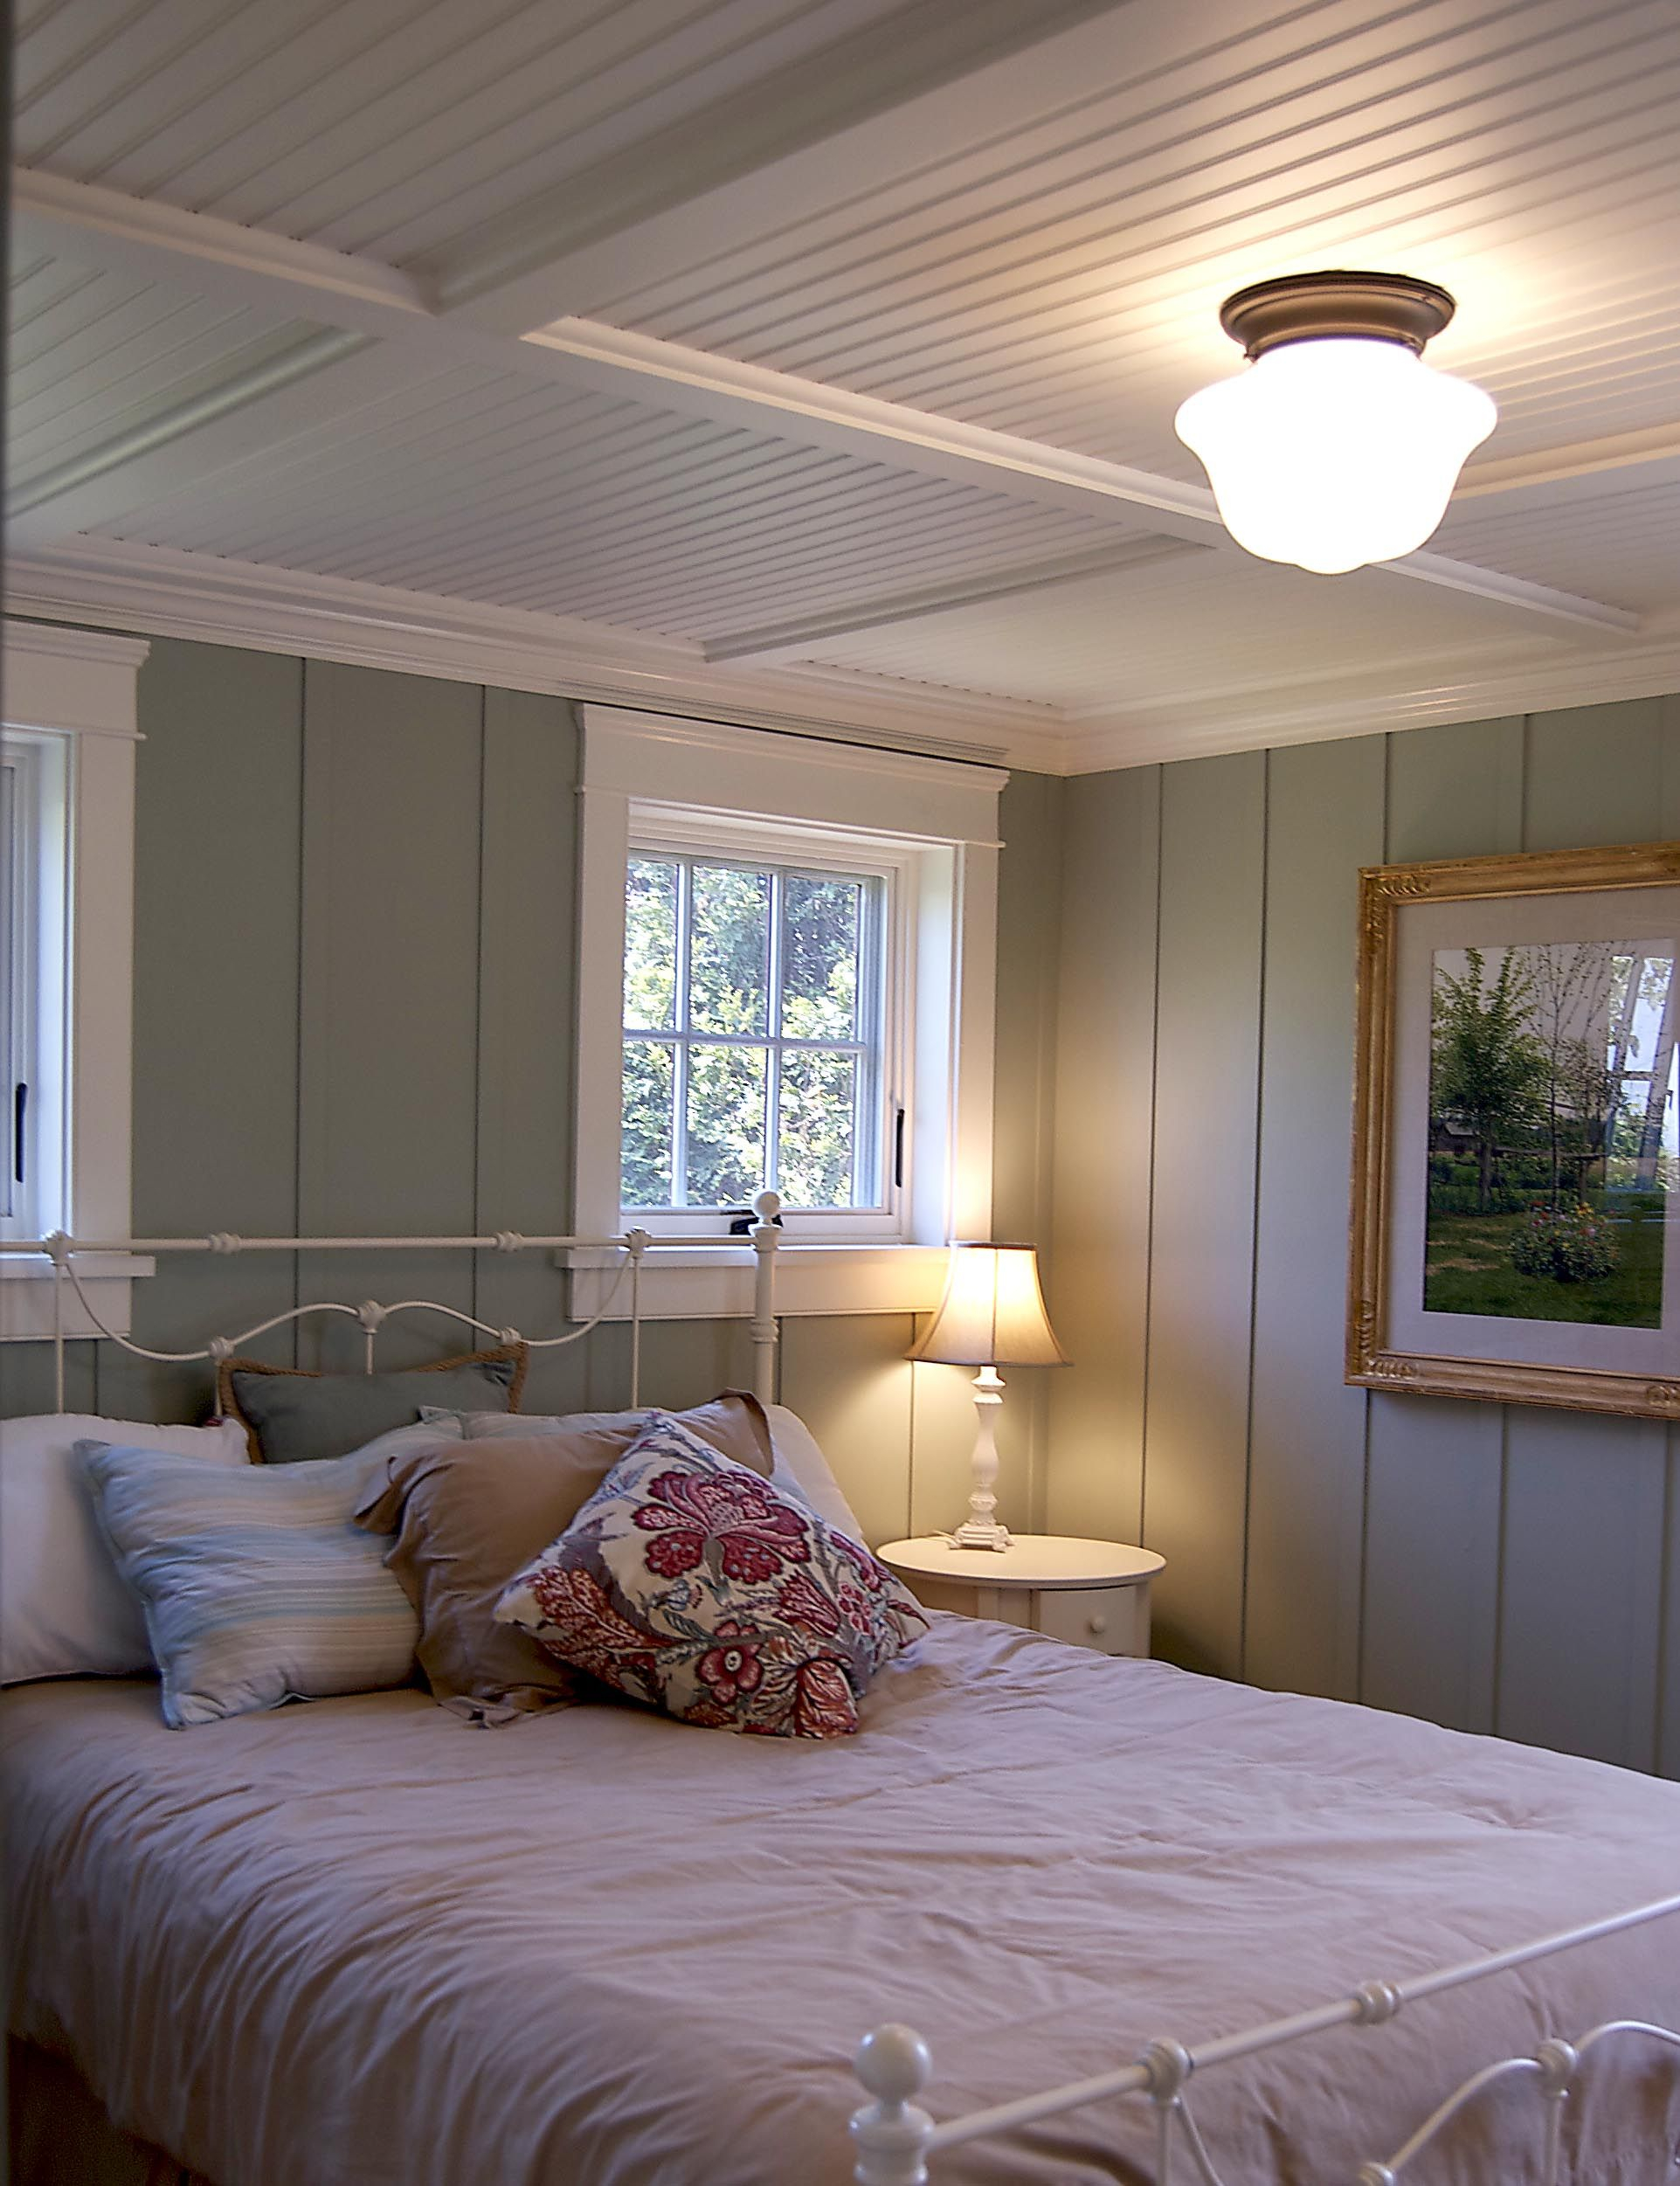 Gulfshoredesign Cottage Bedroom With Floor To Ceiling Painted